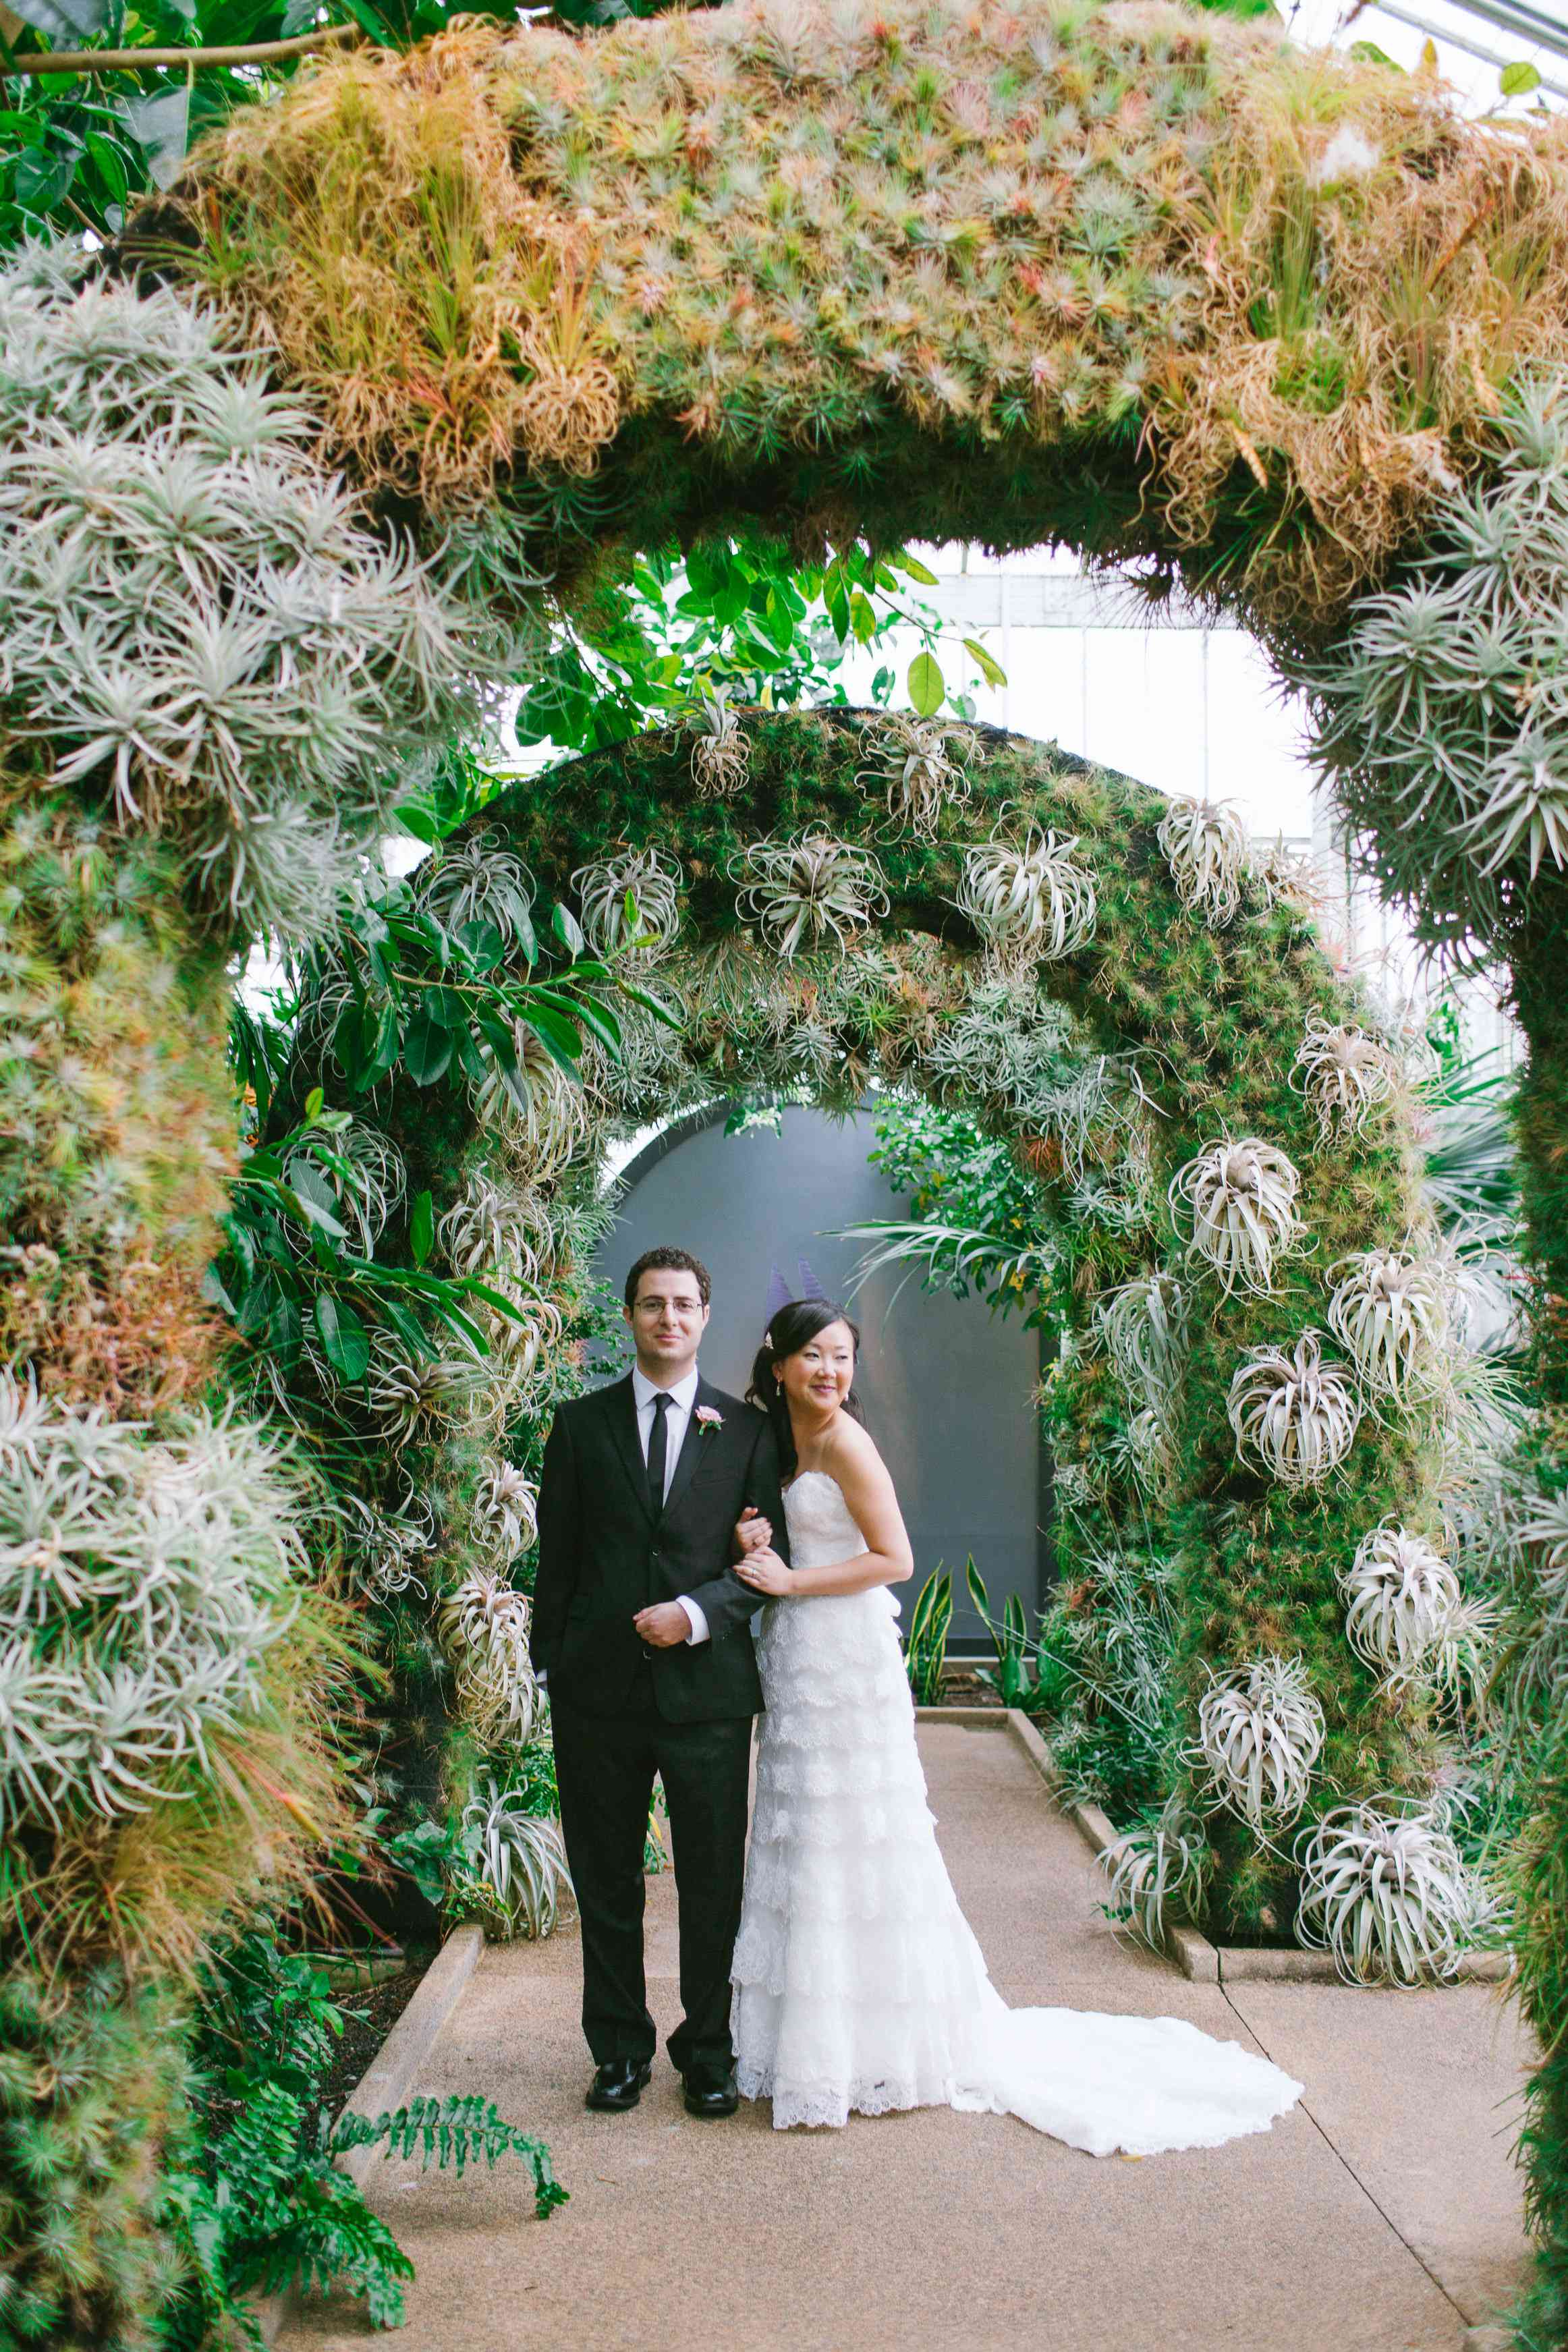 Wedding Arches of Air Plants with bride and groom